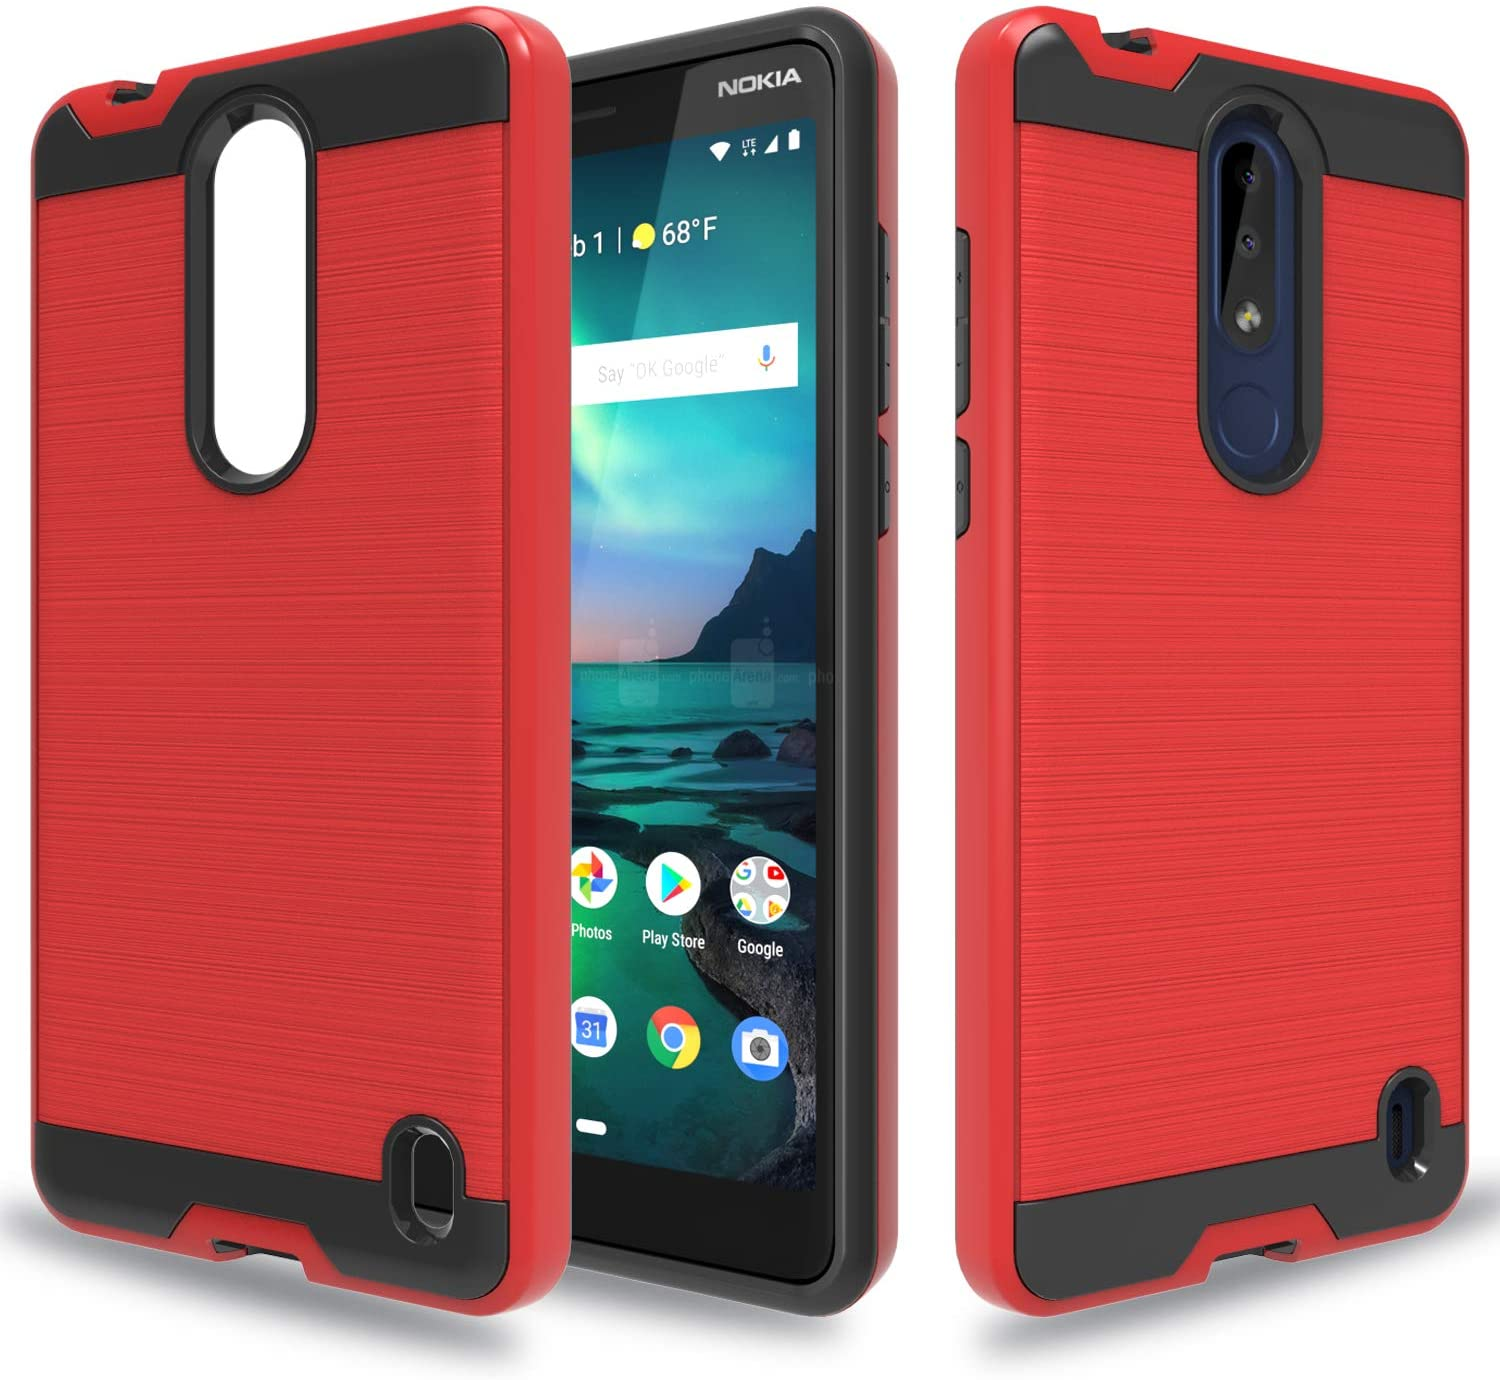 Wtiaw for:Nokia 3.1 Plus Case,Nokia 3.1 Plus Phone Cases,[TPU+PC Material] [Brushed Metal Texture] Hybrid Dual Layer Defender Case for Nokia 3.1 Plus-CL Red